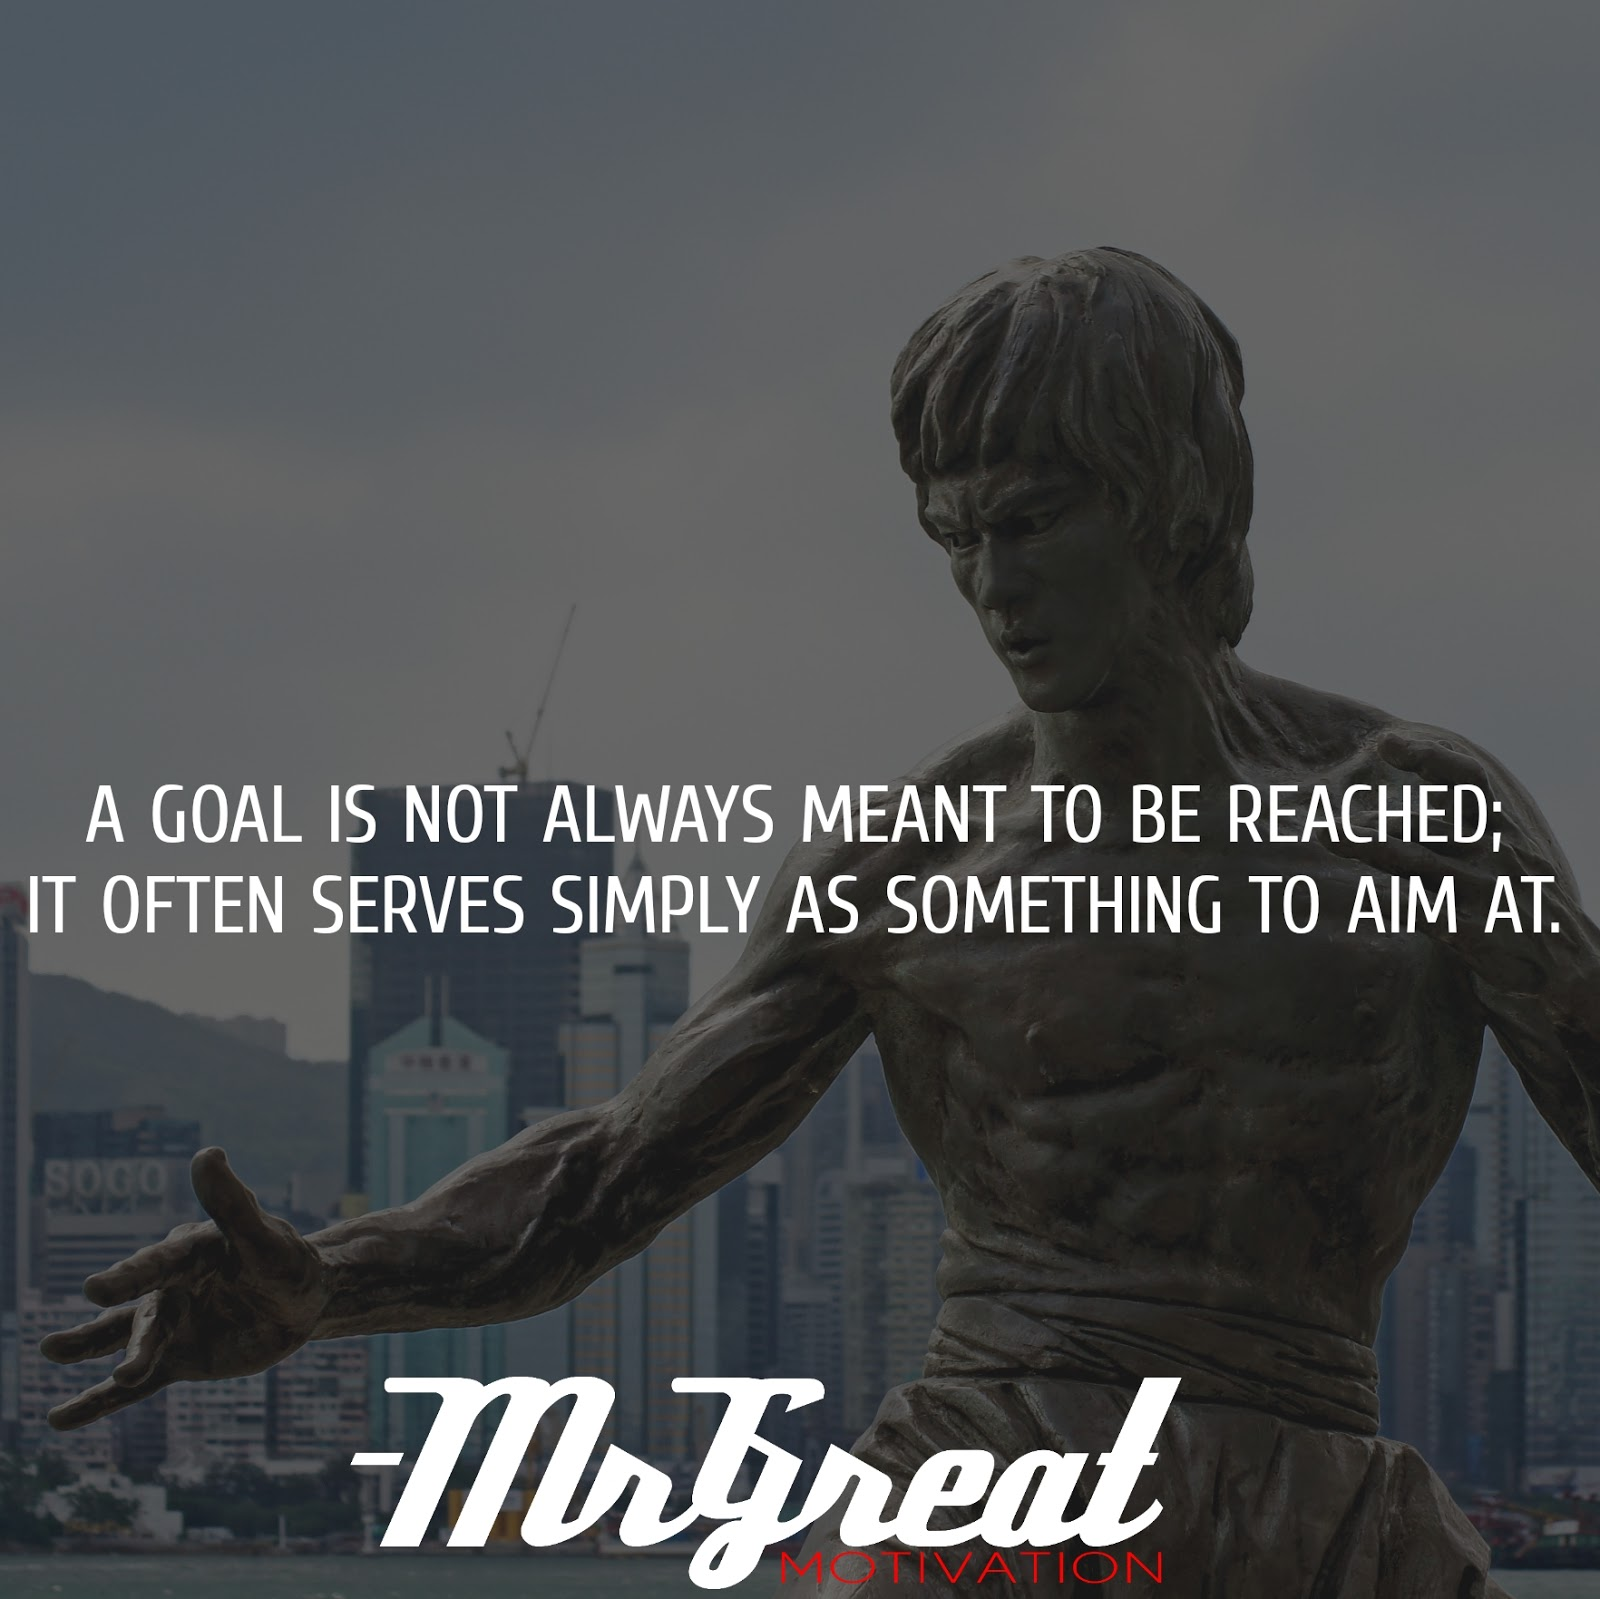 A goal is not always meant to be reached; it often serves simply as something to aim at. - Bruce Lee